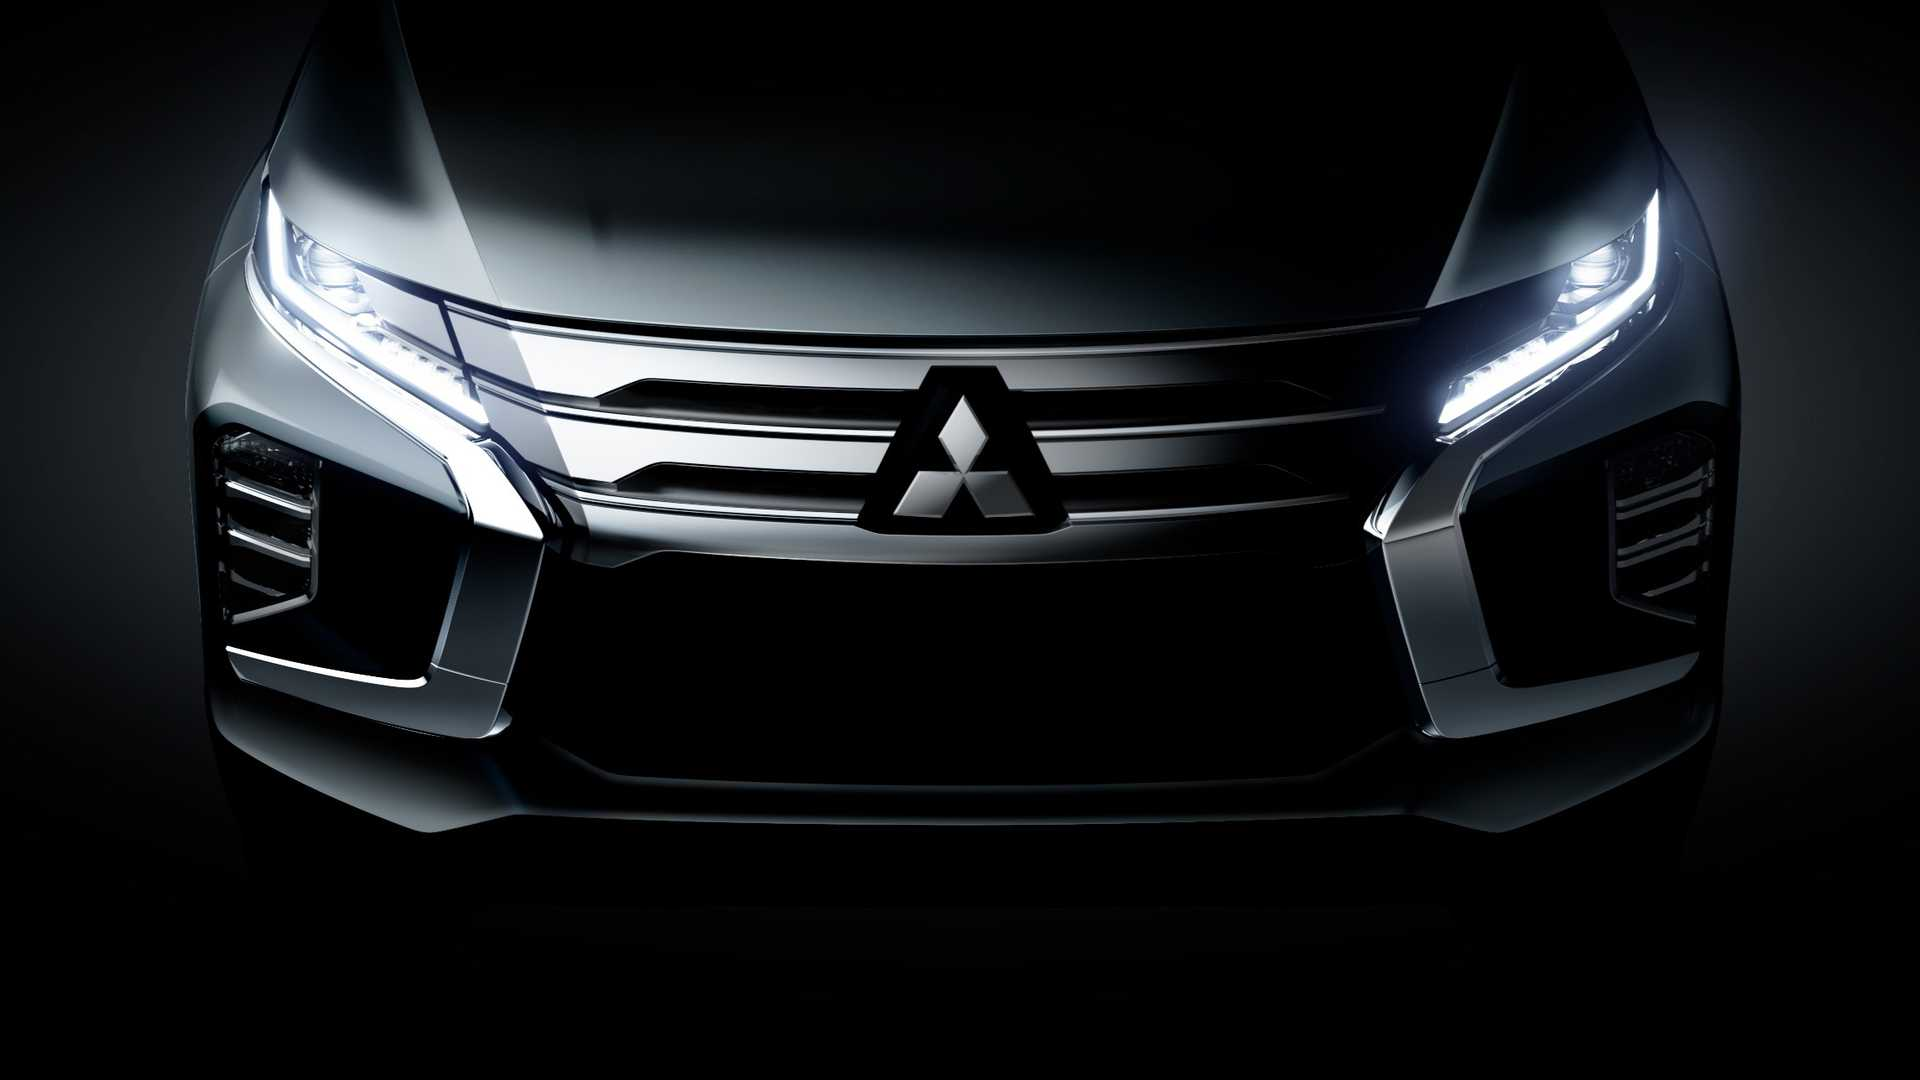 43 A Mitsubishi Pajero Full 2020 Specs And Review